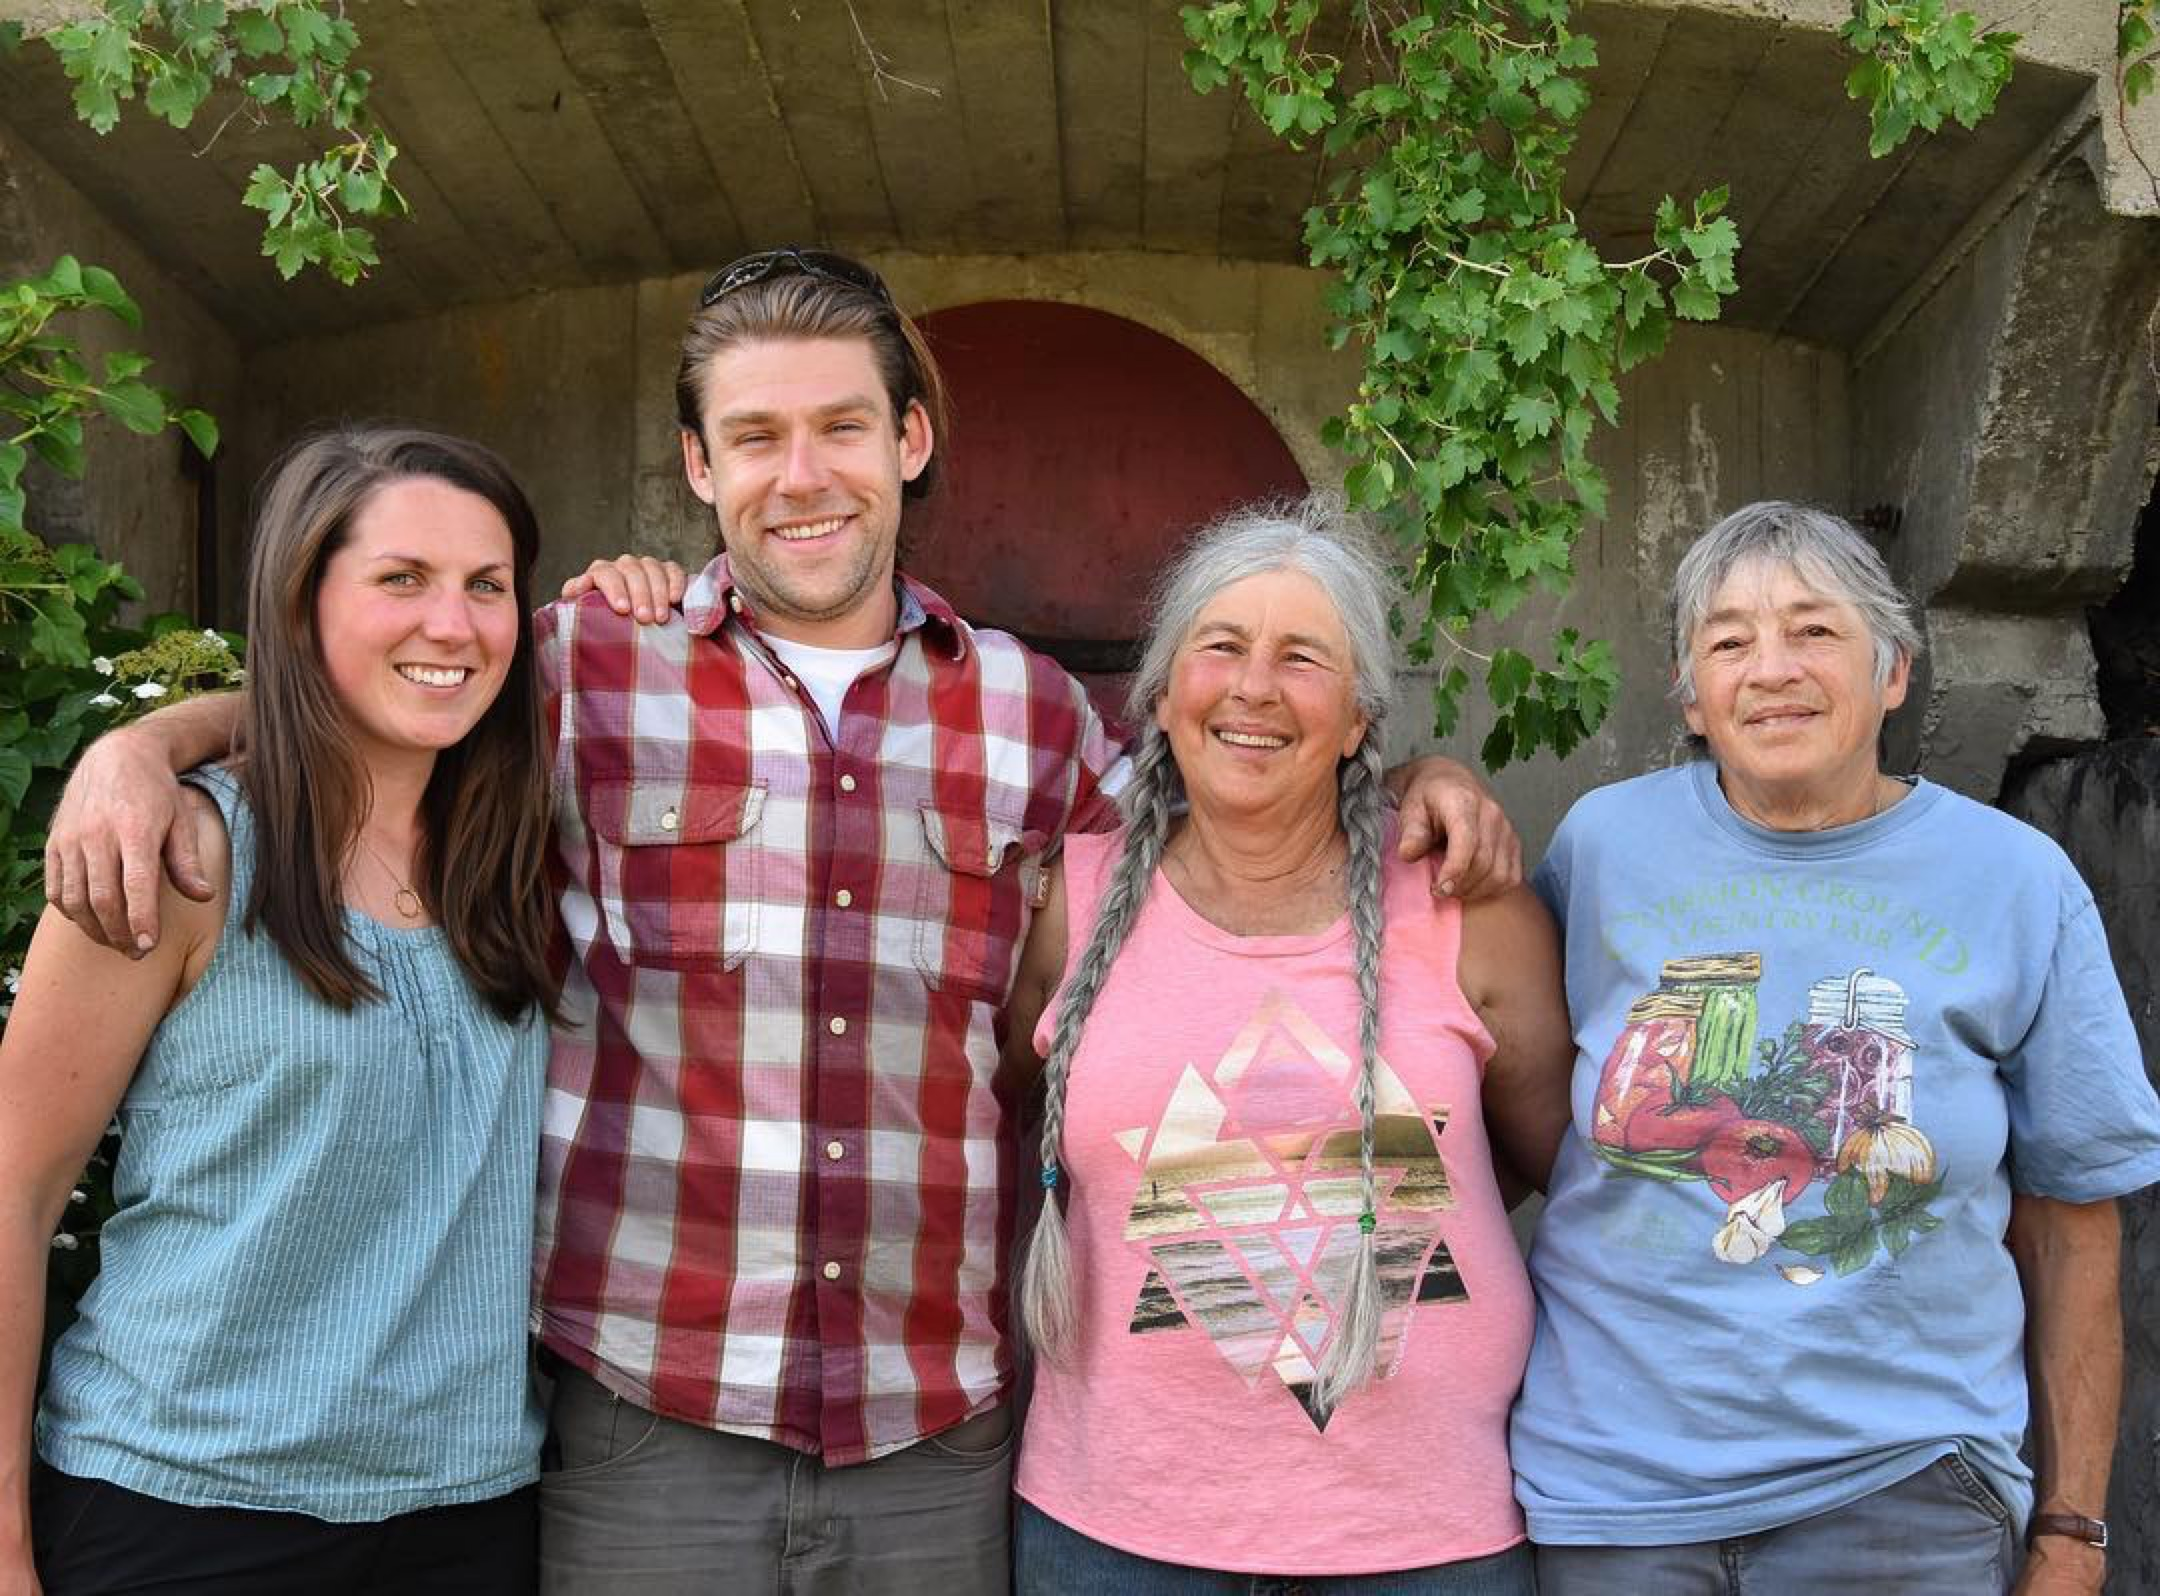 Kate Turcotte (L) with her husband Zack Munzer and Orb Weaver founders Marjorie Susman and Marian Pollack.